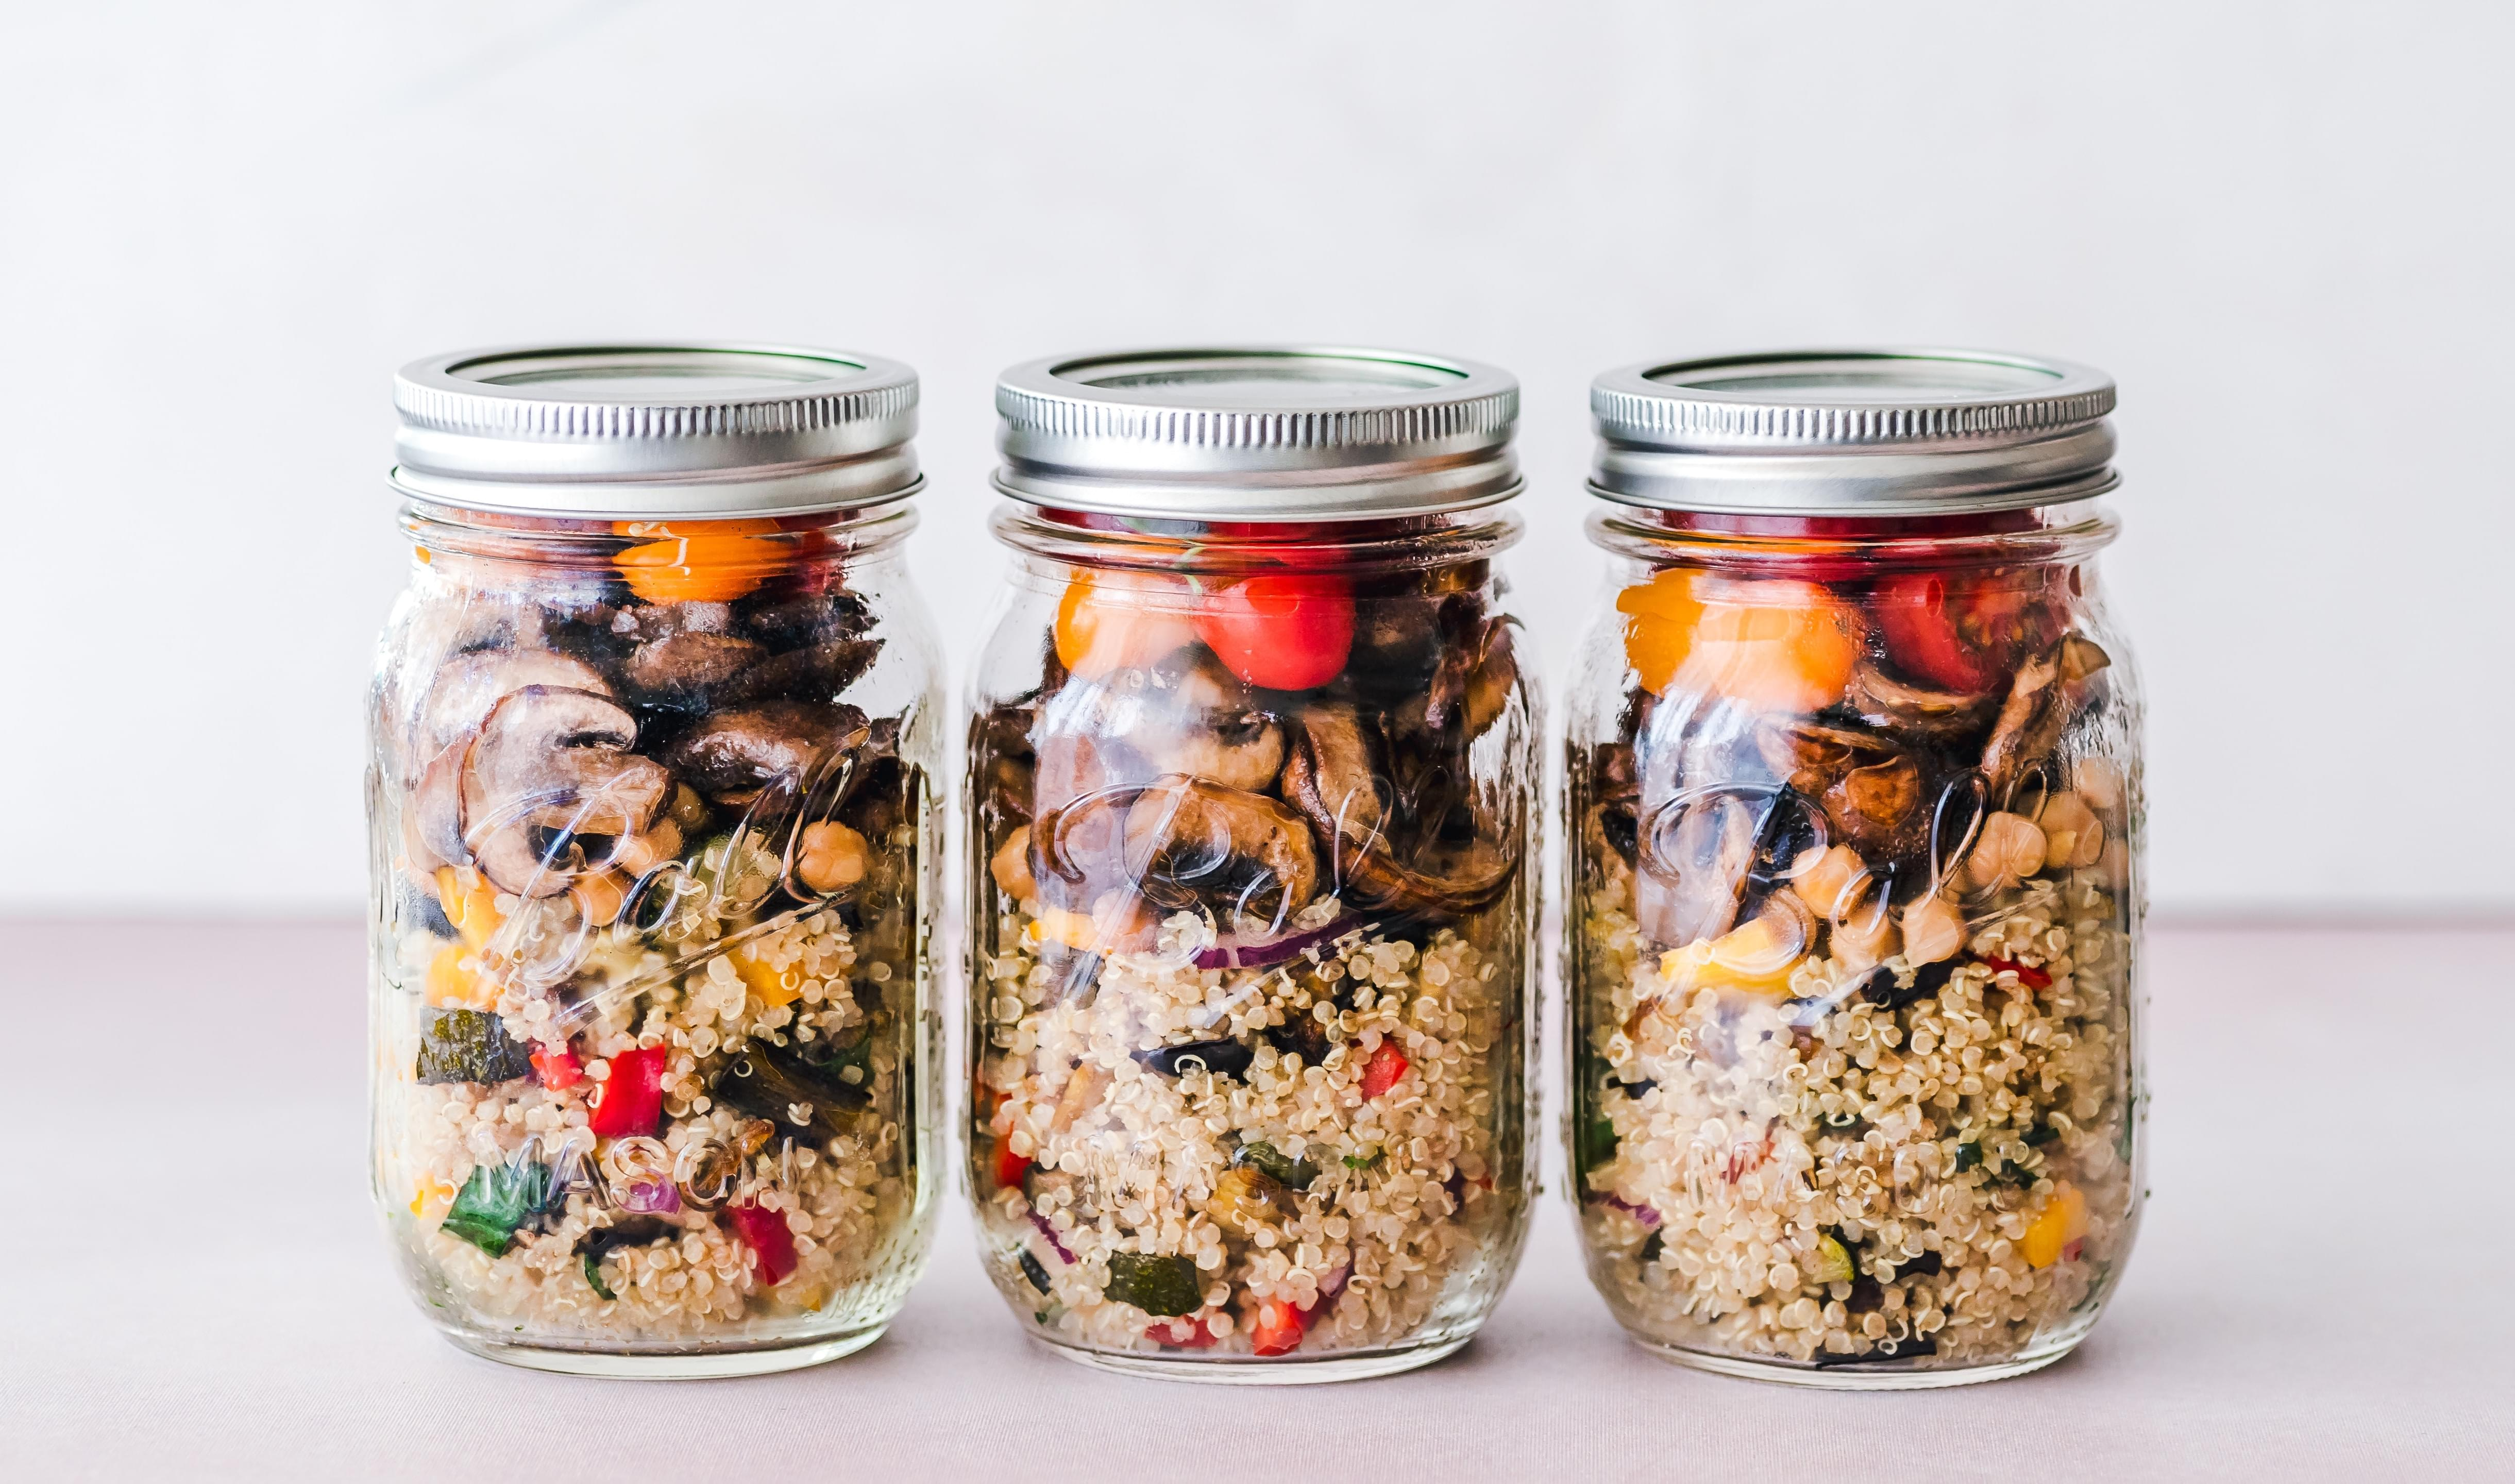 Minimal-waste mason jars with couscous salad